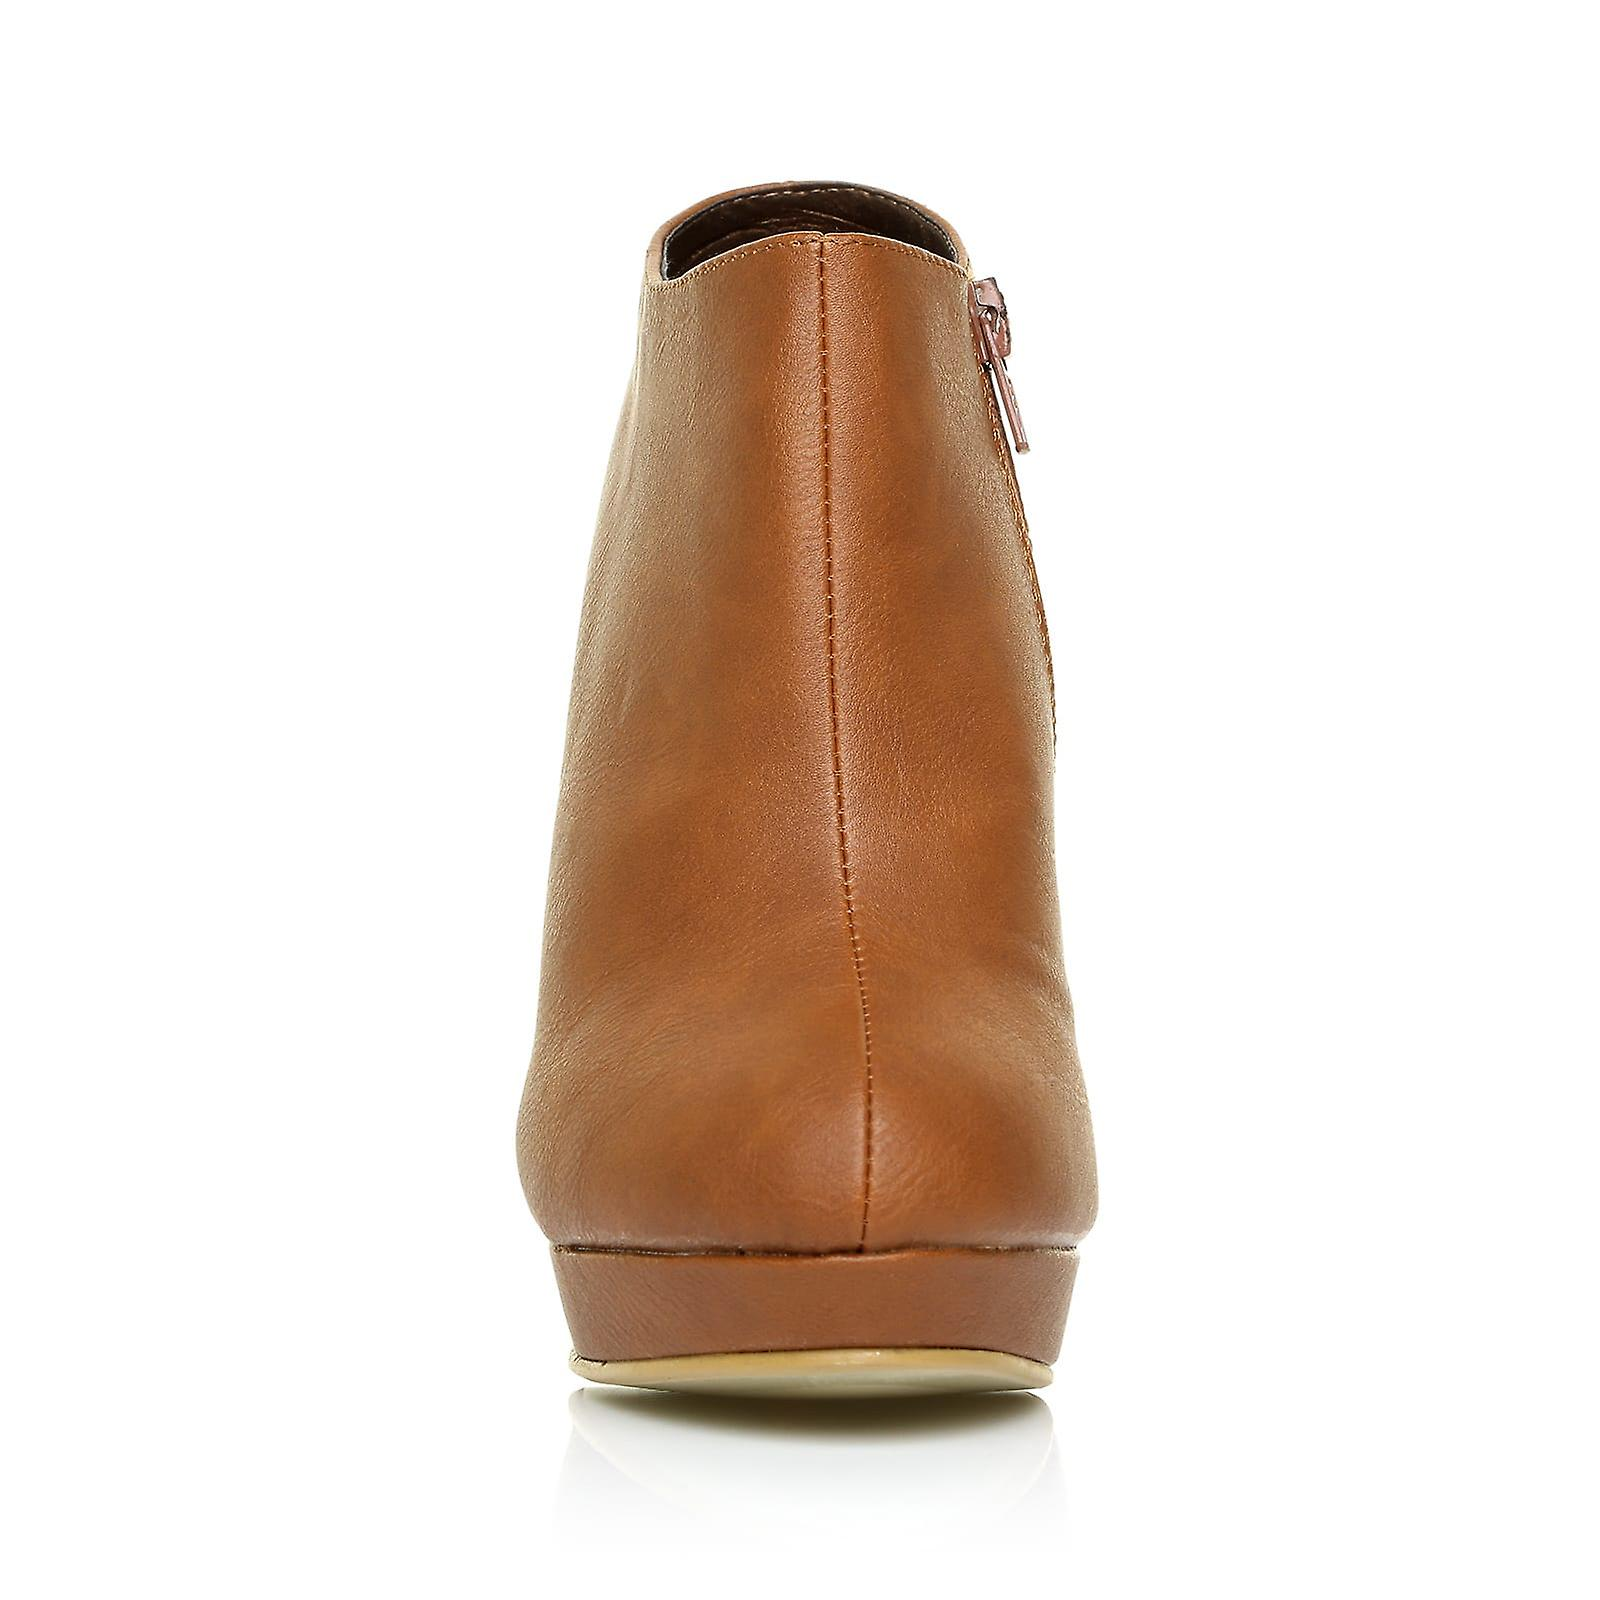 H20 Tan PU Leather Stilleto Very High Heel Ankle Shoe Shoe Shoe Boots 416843